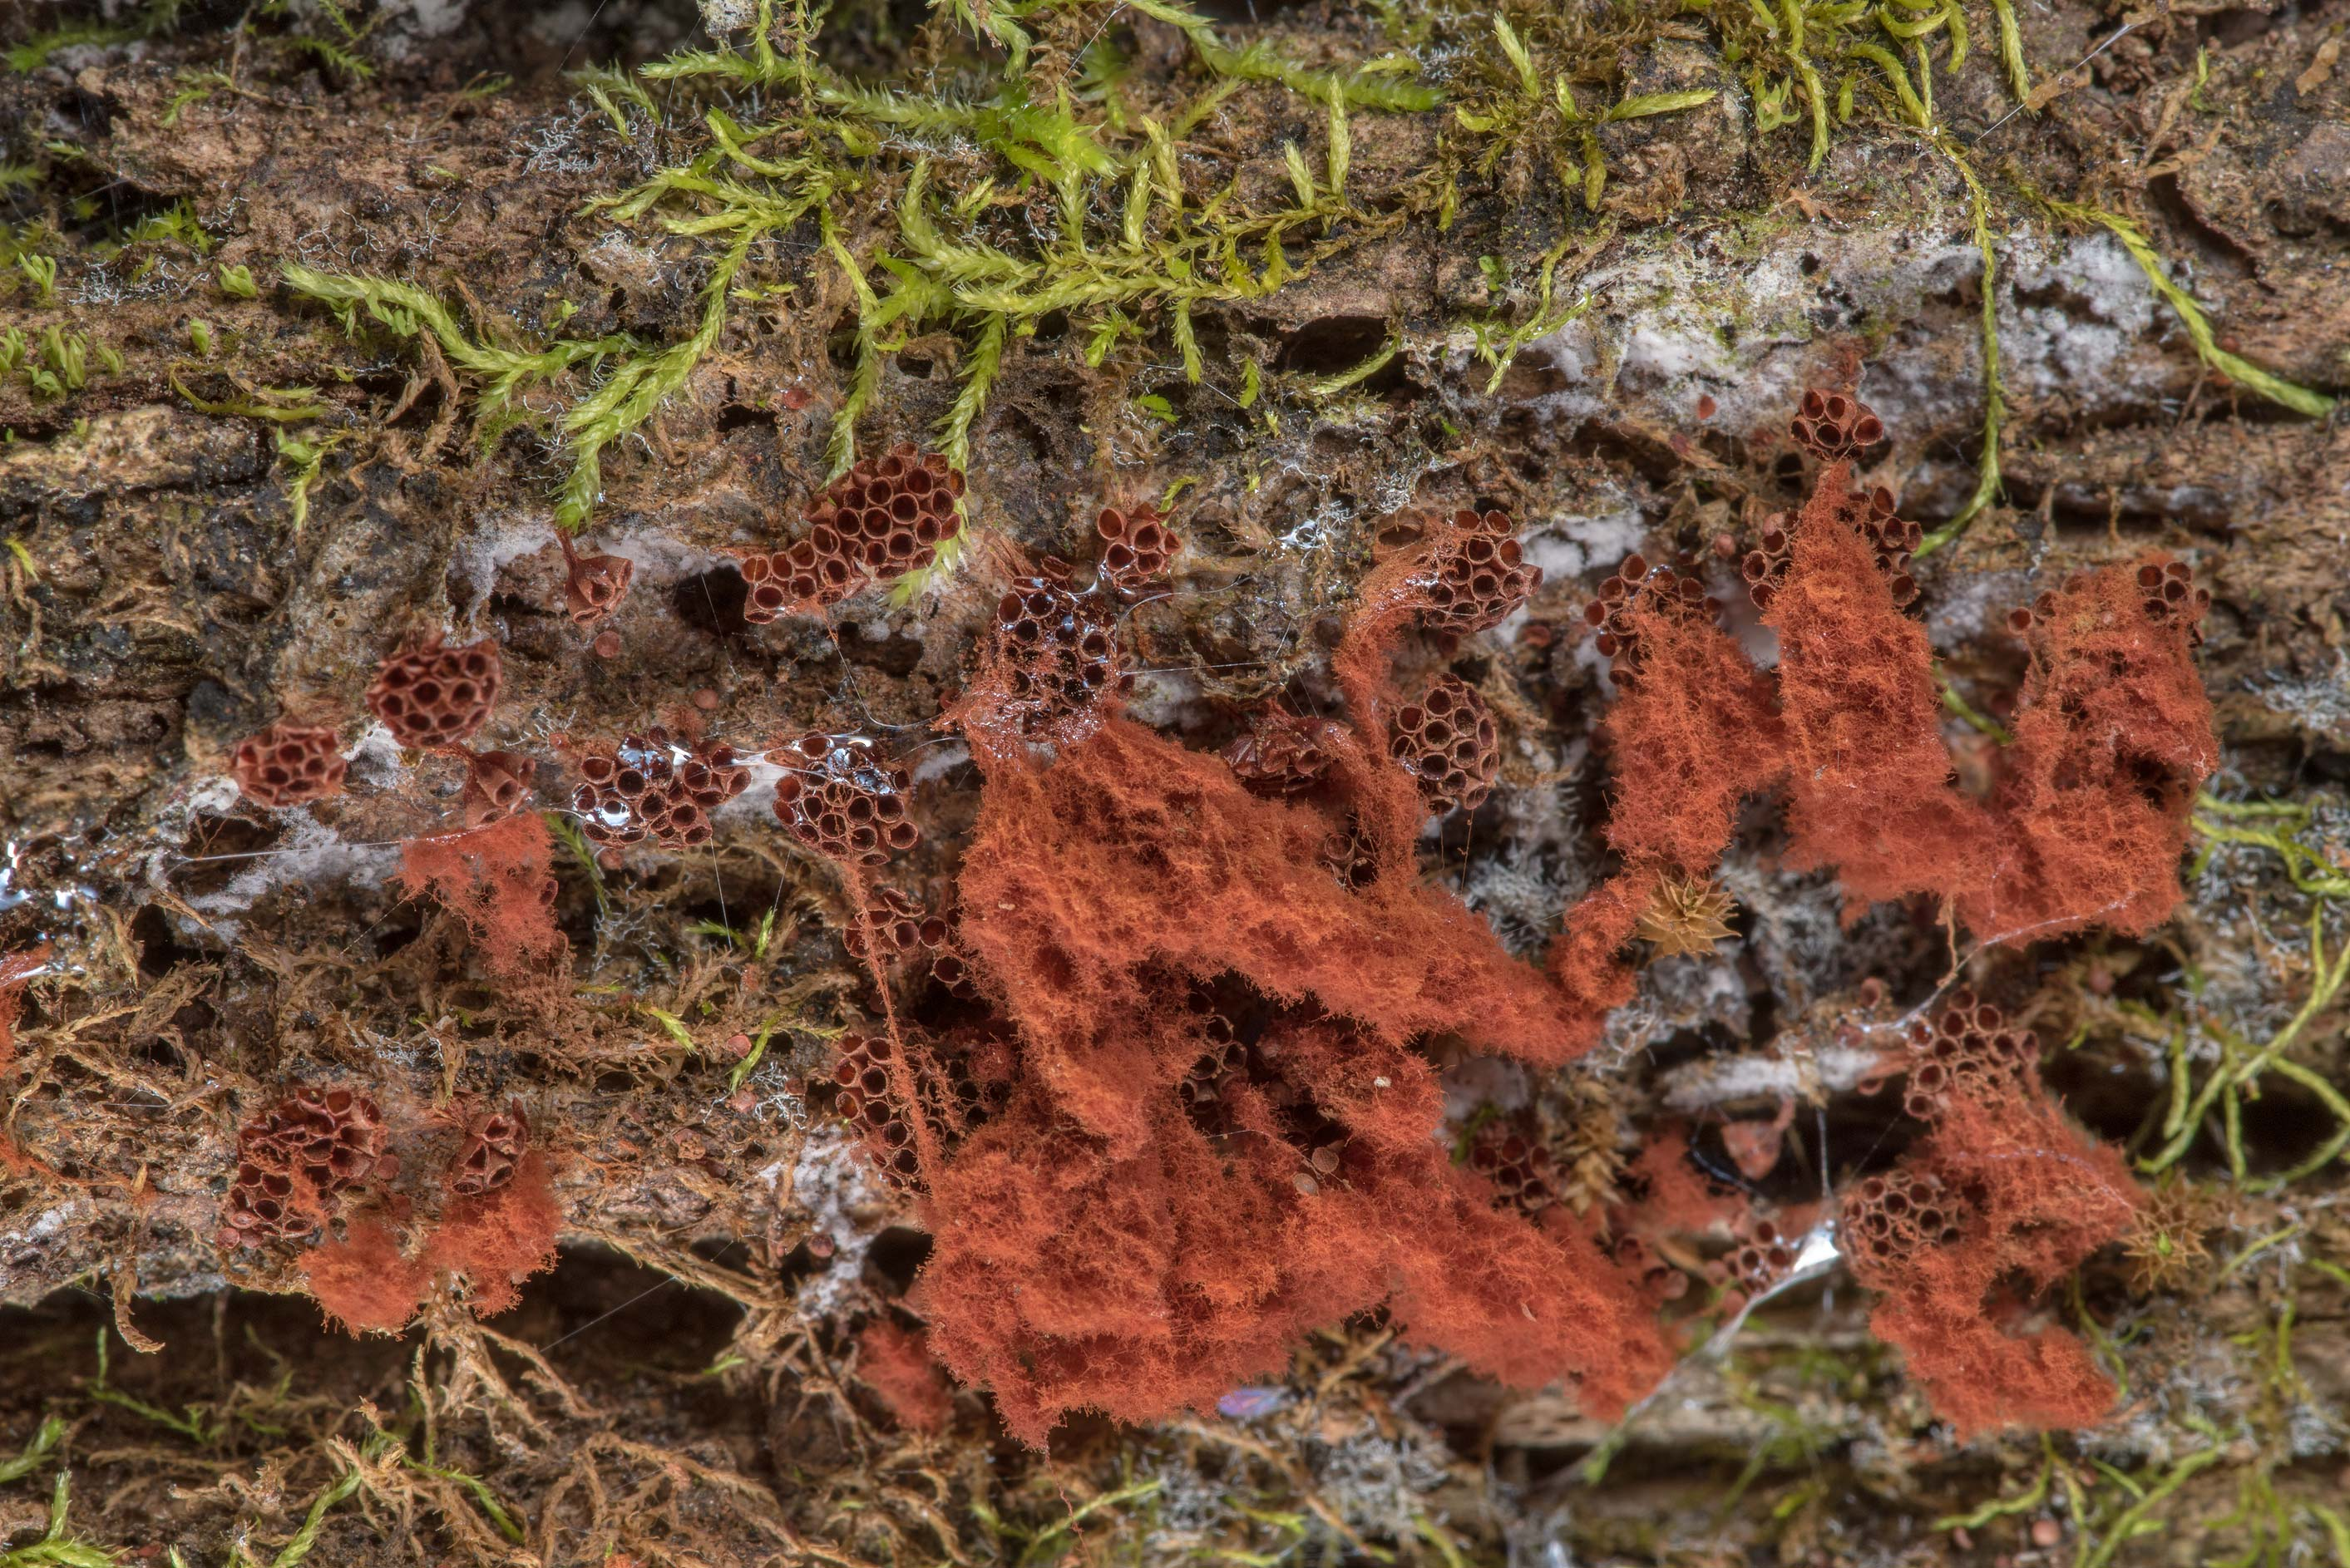 Wasp nest slime mold (Metatrichia vesparia) on a...National Forest. Richards, Texas